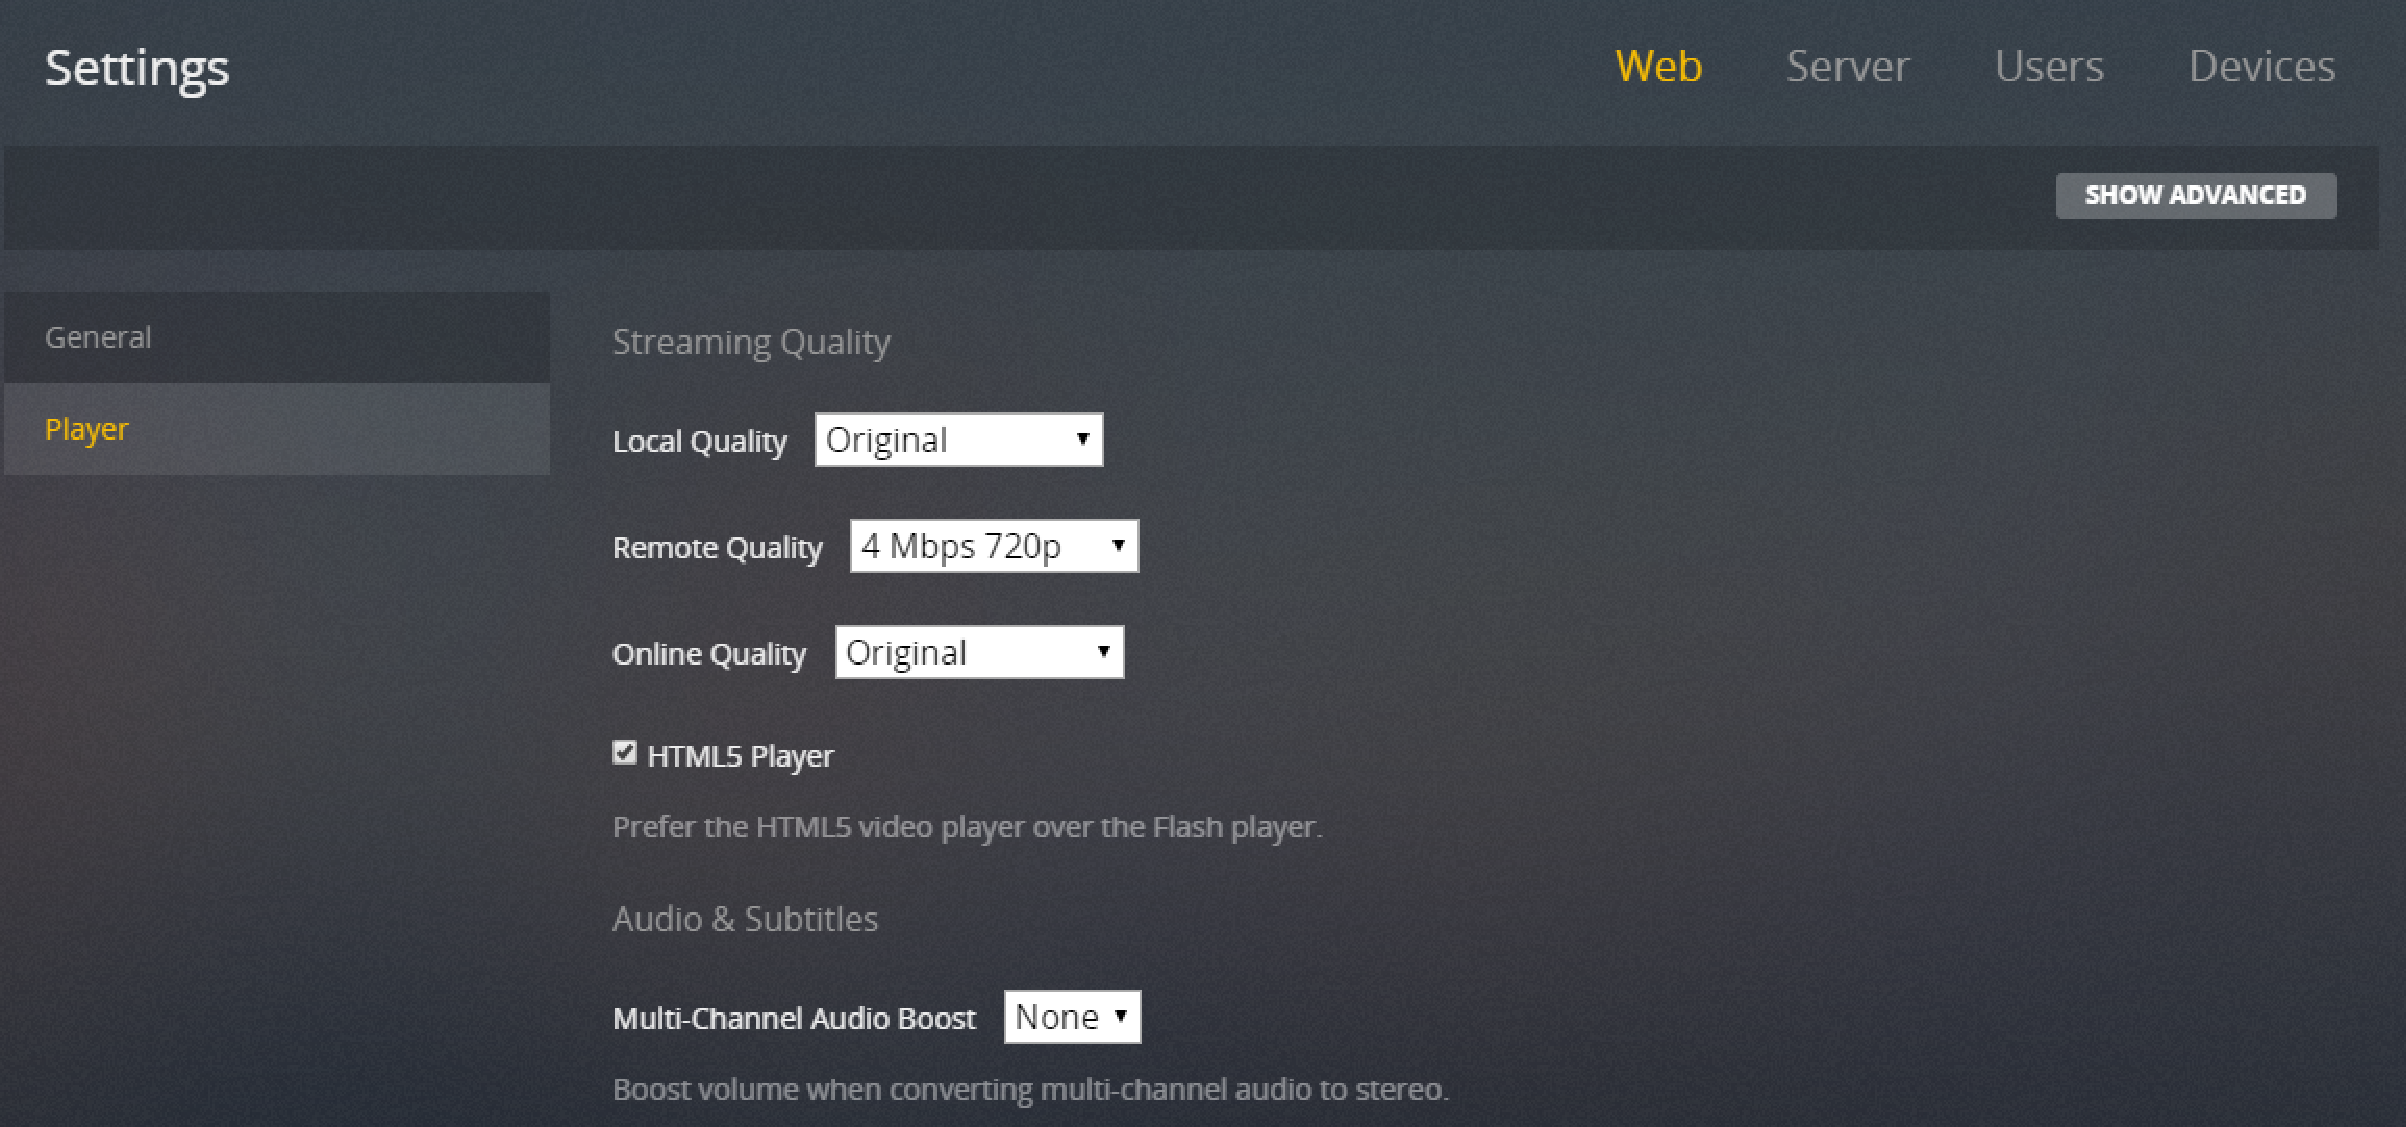 Another way to change streaming quality You can predefine a streaming quality by forcing the player s local remote quality from the Plex server